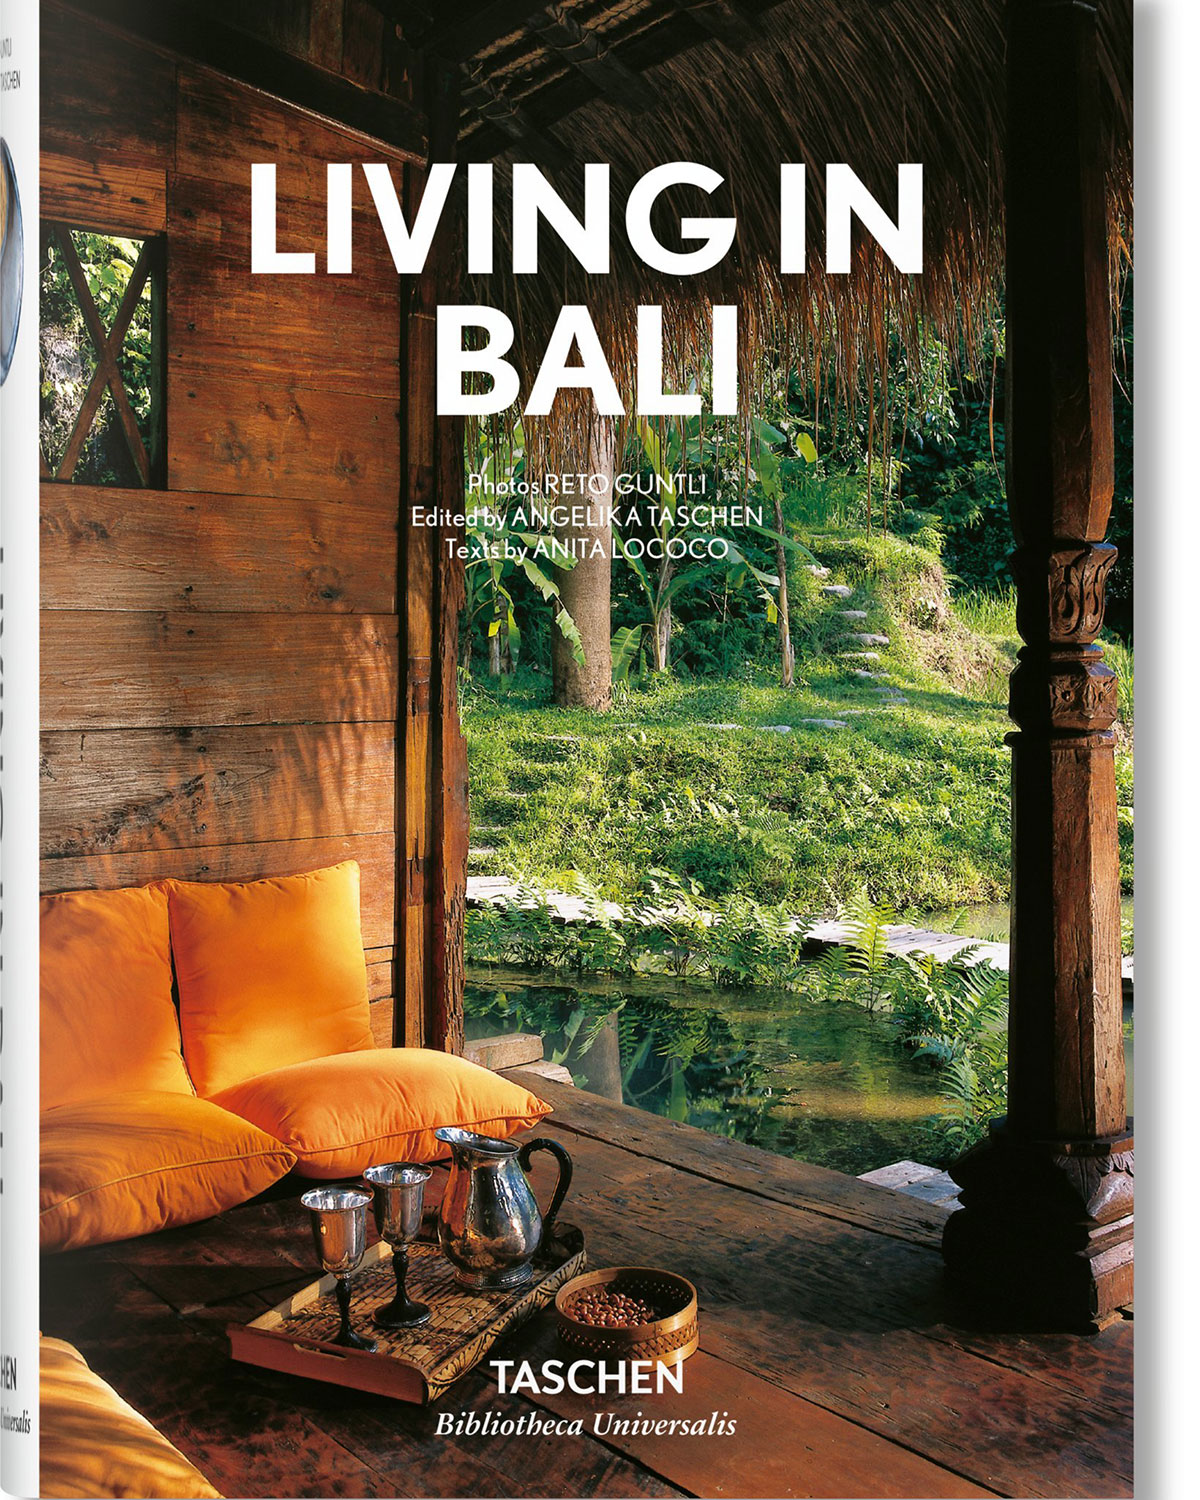 "Carved wood, secluded courtyards, and frangipani blossoms: soak up the Eastern elegance of these heavenly Indonesian interiors. Opening onto gorgeous green landscapes, majestic mountains, or beautiful coastlines, these Balinese homes exude relaxing, contemplative vibes. Unwind and refresh with this compact showcase of rustic paradises, updated with fresh, never-before-seen images. 6""W x 8""D x 2""T. Paper. Imported."